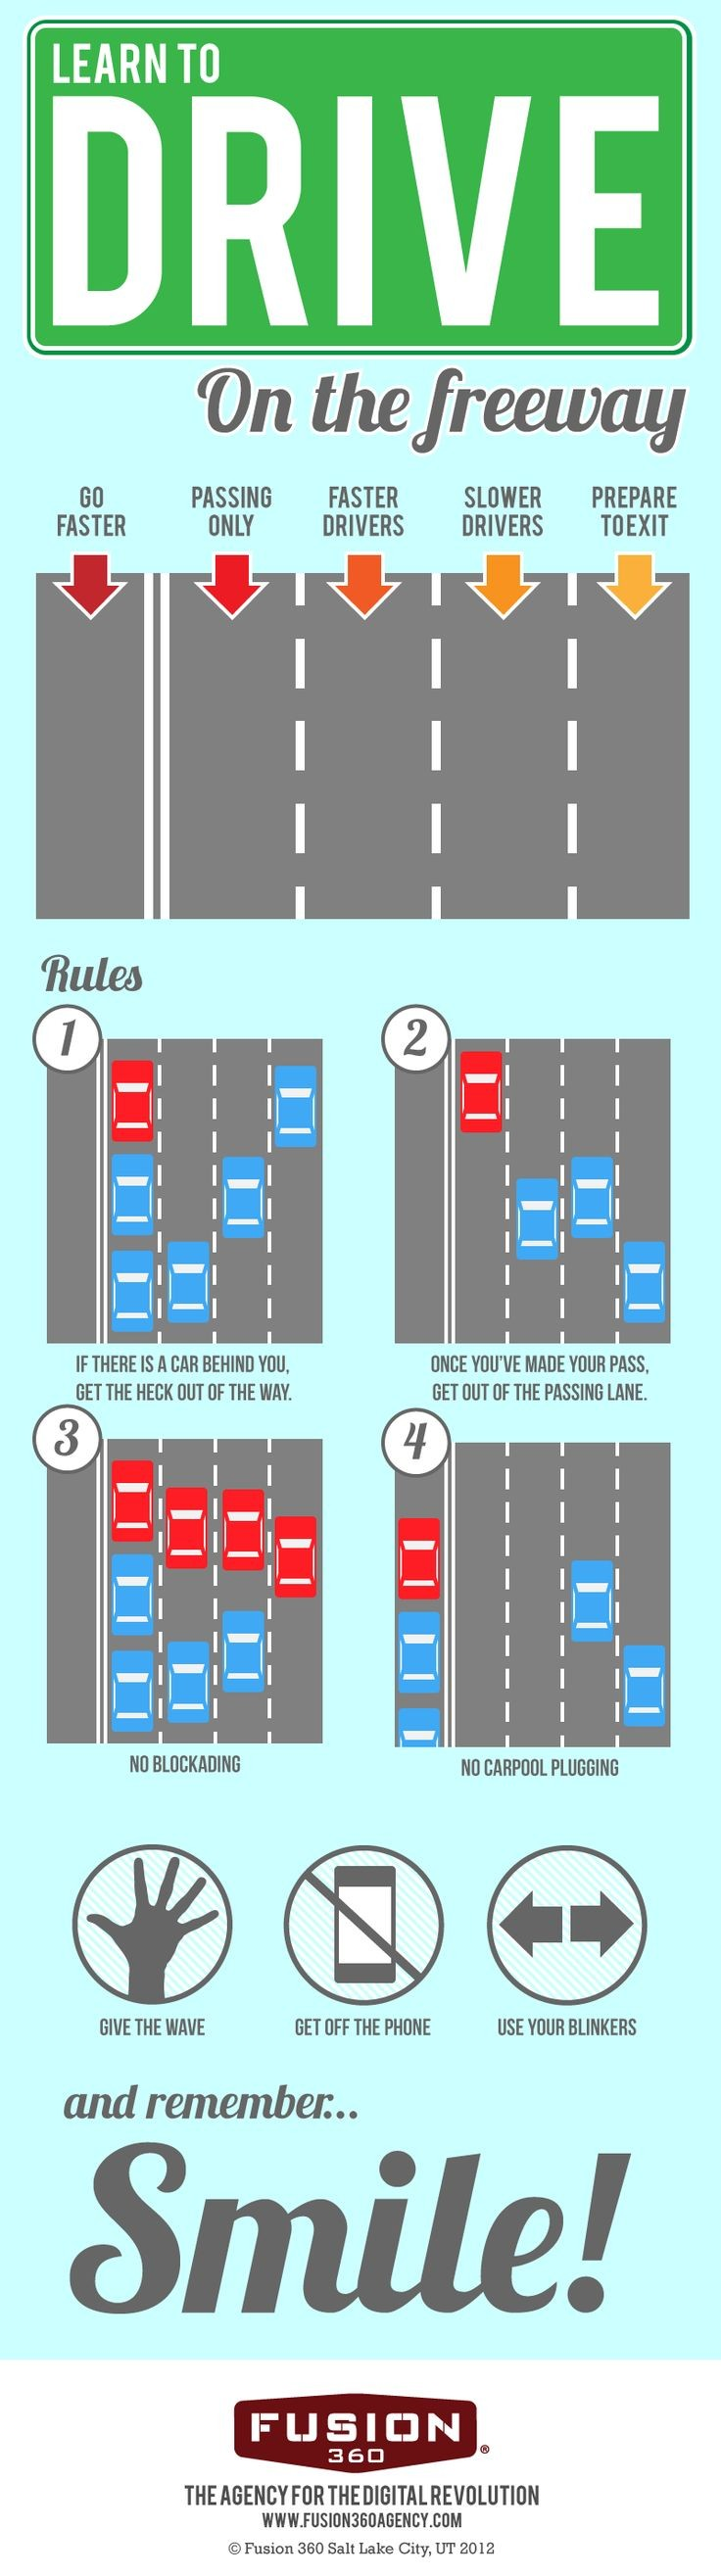 Car Engine Diagram Driving Test 6 Little Known Driving Tips that Could Save Your Life Of Car Engine Diagram Driving Test